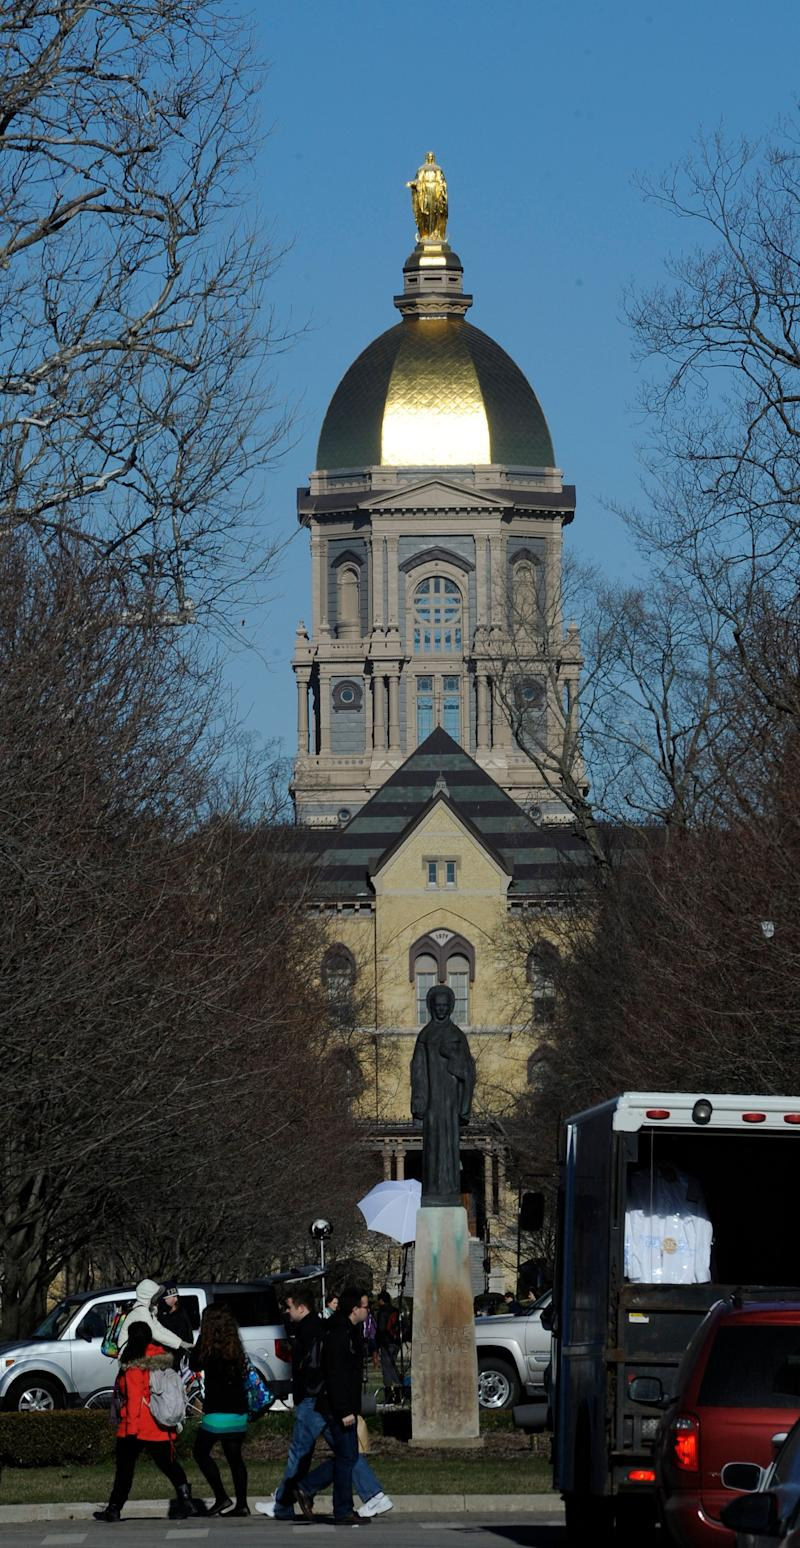 """University of Notre Dame Under Federal Review After Second Family Complains About Assault Allegations Mishandle <a href=""""http://www.huffingtonpost.com/2011/02/19/university-of-notre-dame-_n_825396.html"""">Feb. 19, 2011</a>: <blockquote>The University of Notre Dame has been placed under federal review by the U.S. Department of Education following two incidents of reported sexual assault that occurred this academic year.</blockquote>"""